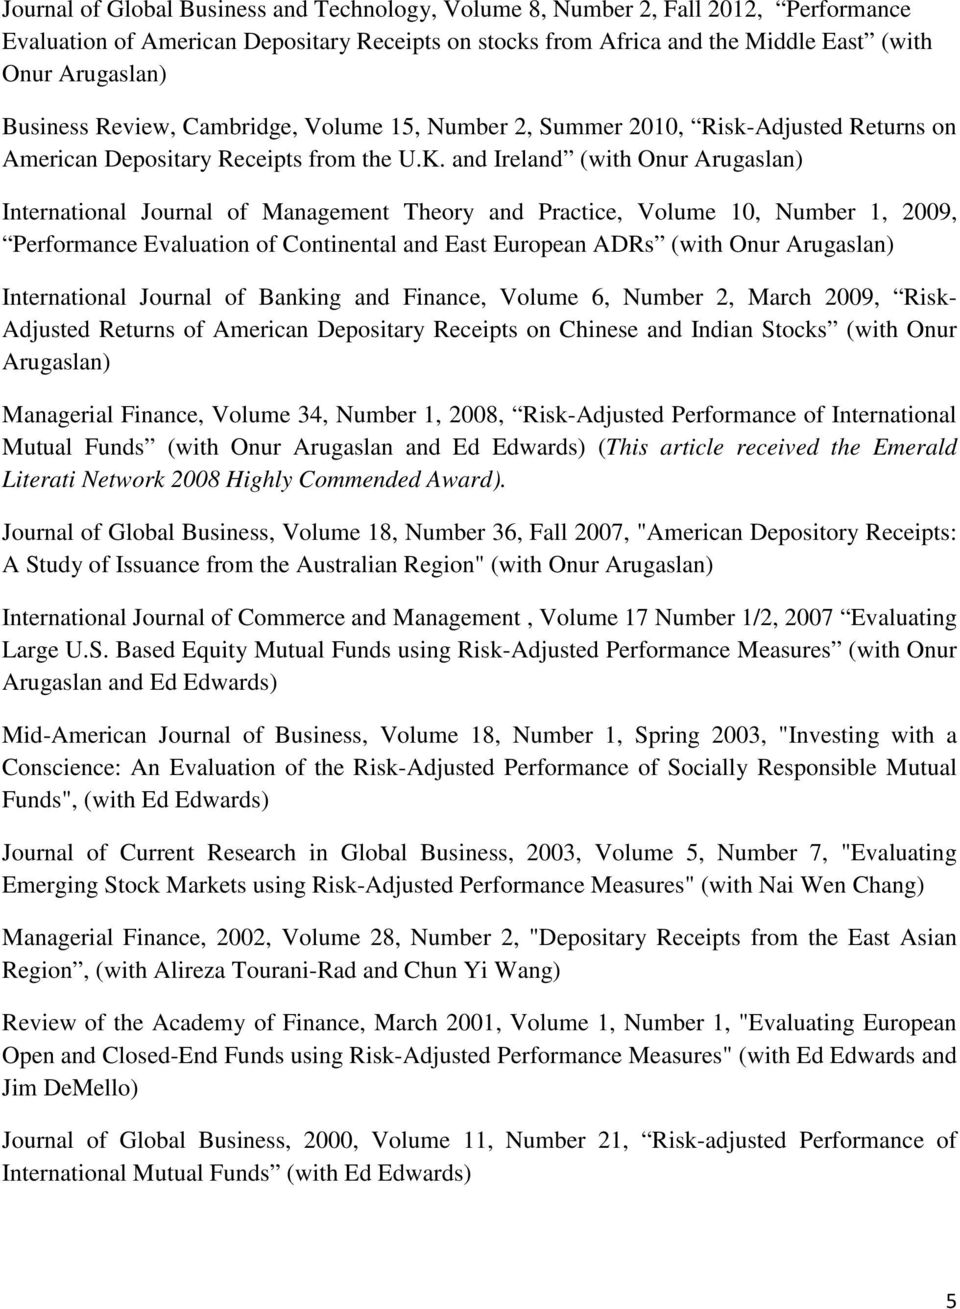 and Ireland (with Onur Arugaslan) International Journal of Management Theory and Practice, Volume 10, Number 1, 2009, Performance Evaluation of Continental and East European ADRs (with Onur